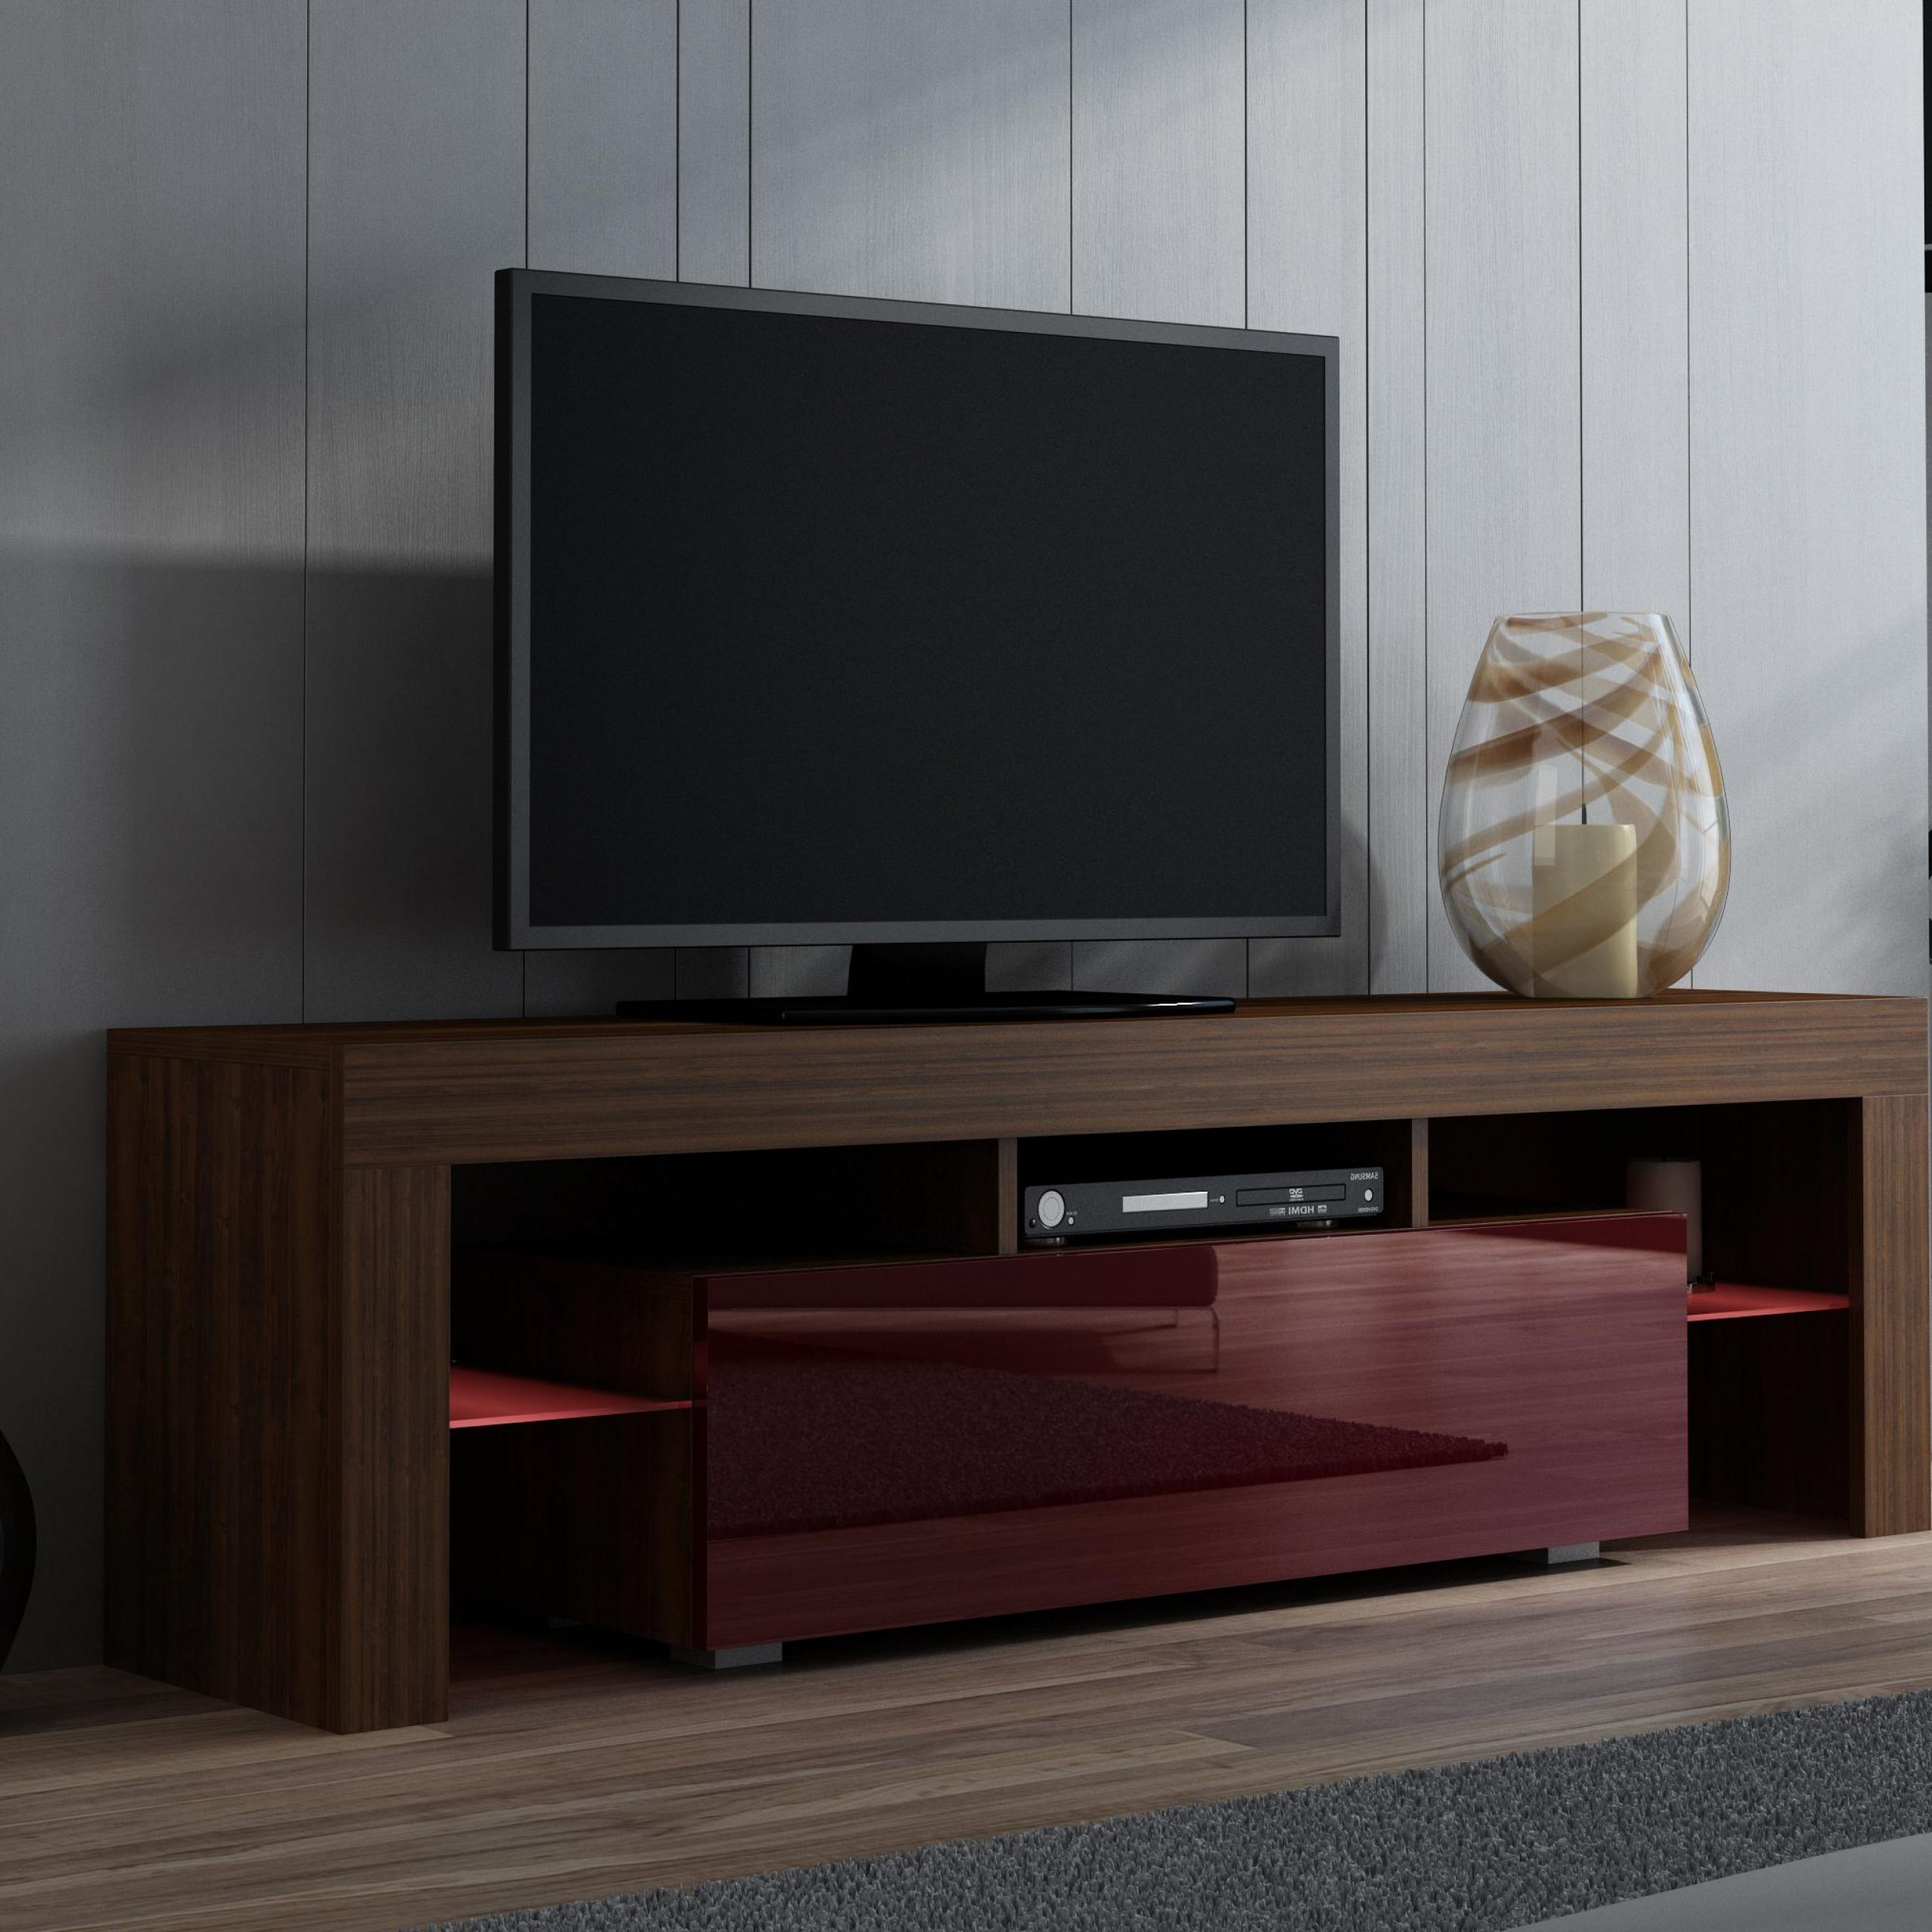 Milano 130 – Walnut Tv Console Table / Entertainment Tv Intended For High Glass Modern Entertainment Tv Stands For Living Room Bedroom (View 2 of 20)